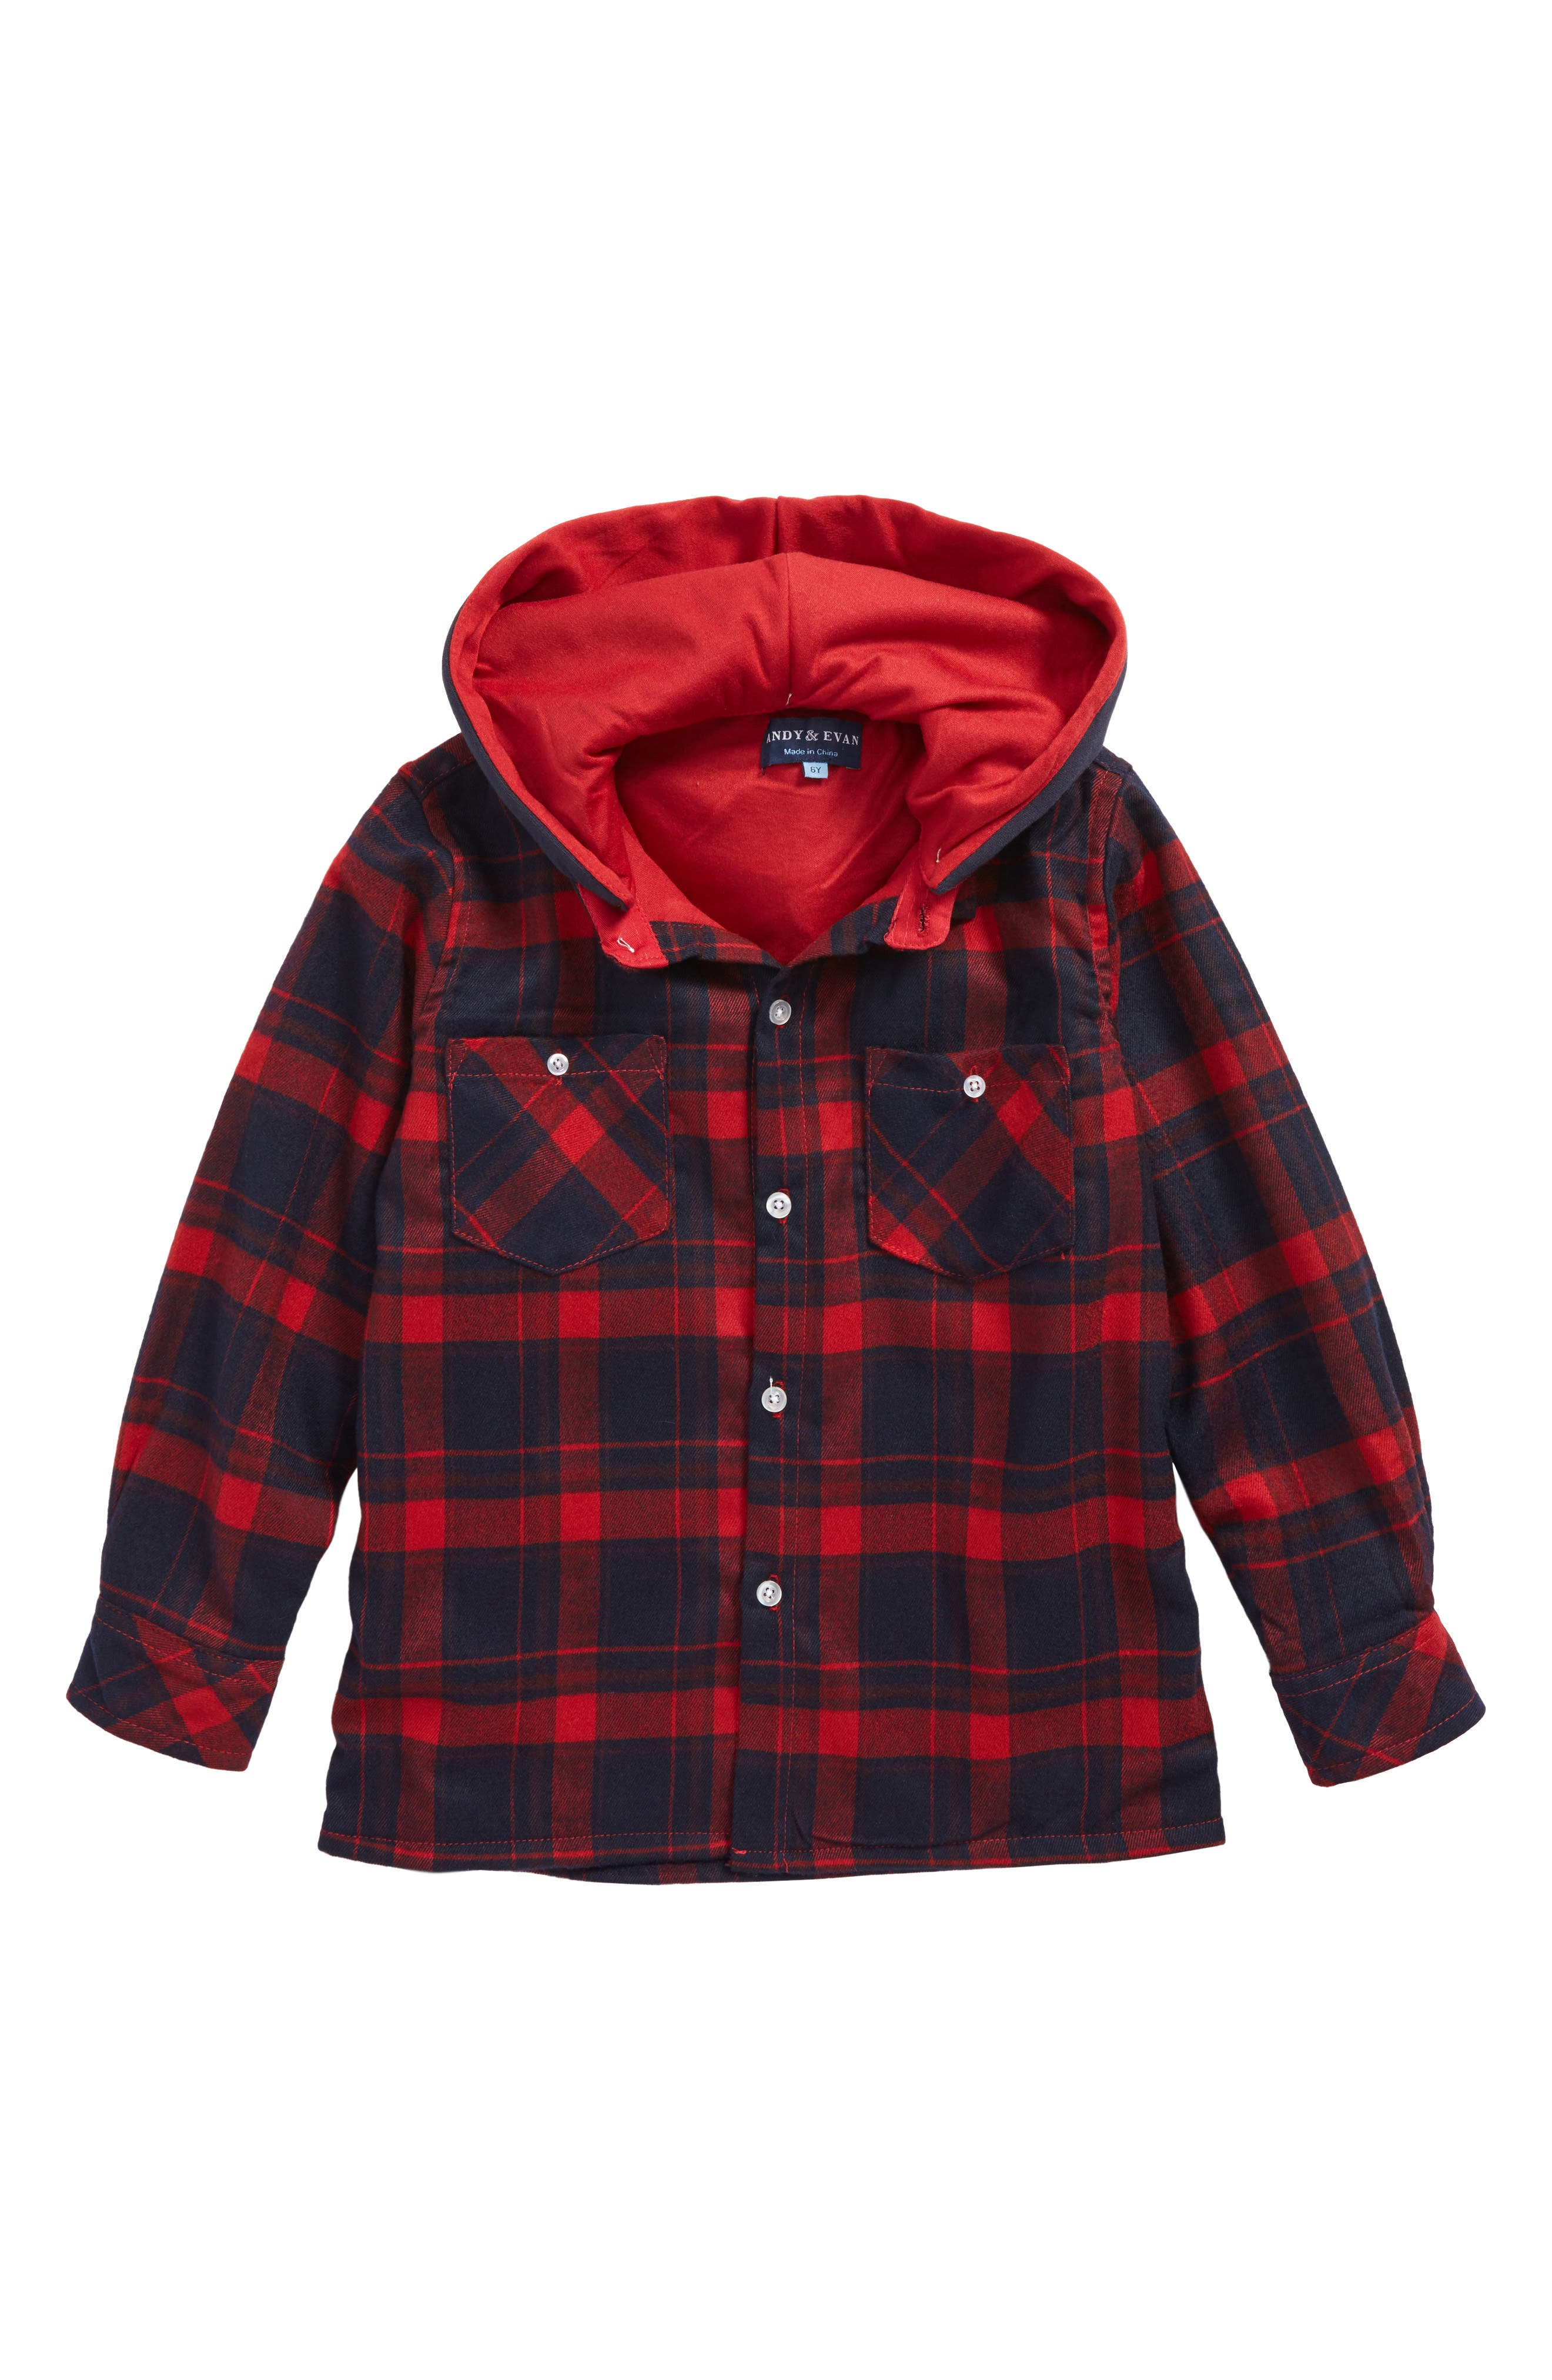 Andy & Even Hooded Flannel Shirt,                         Main,                         color, Red